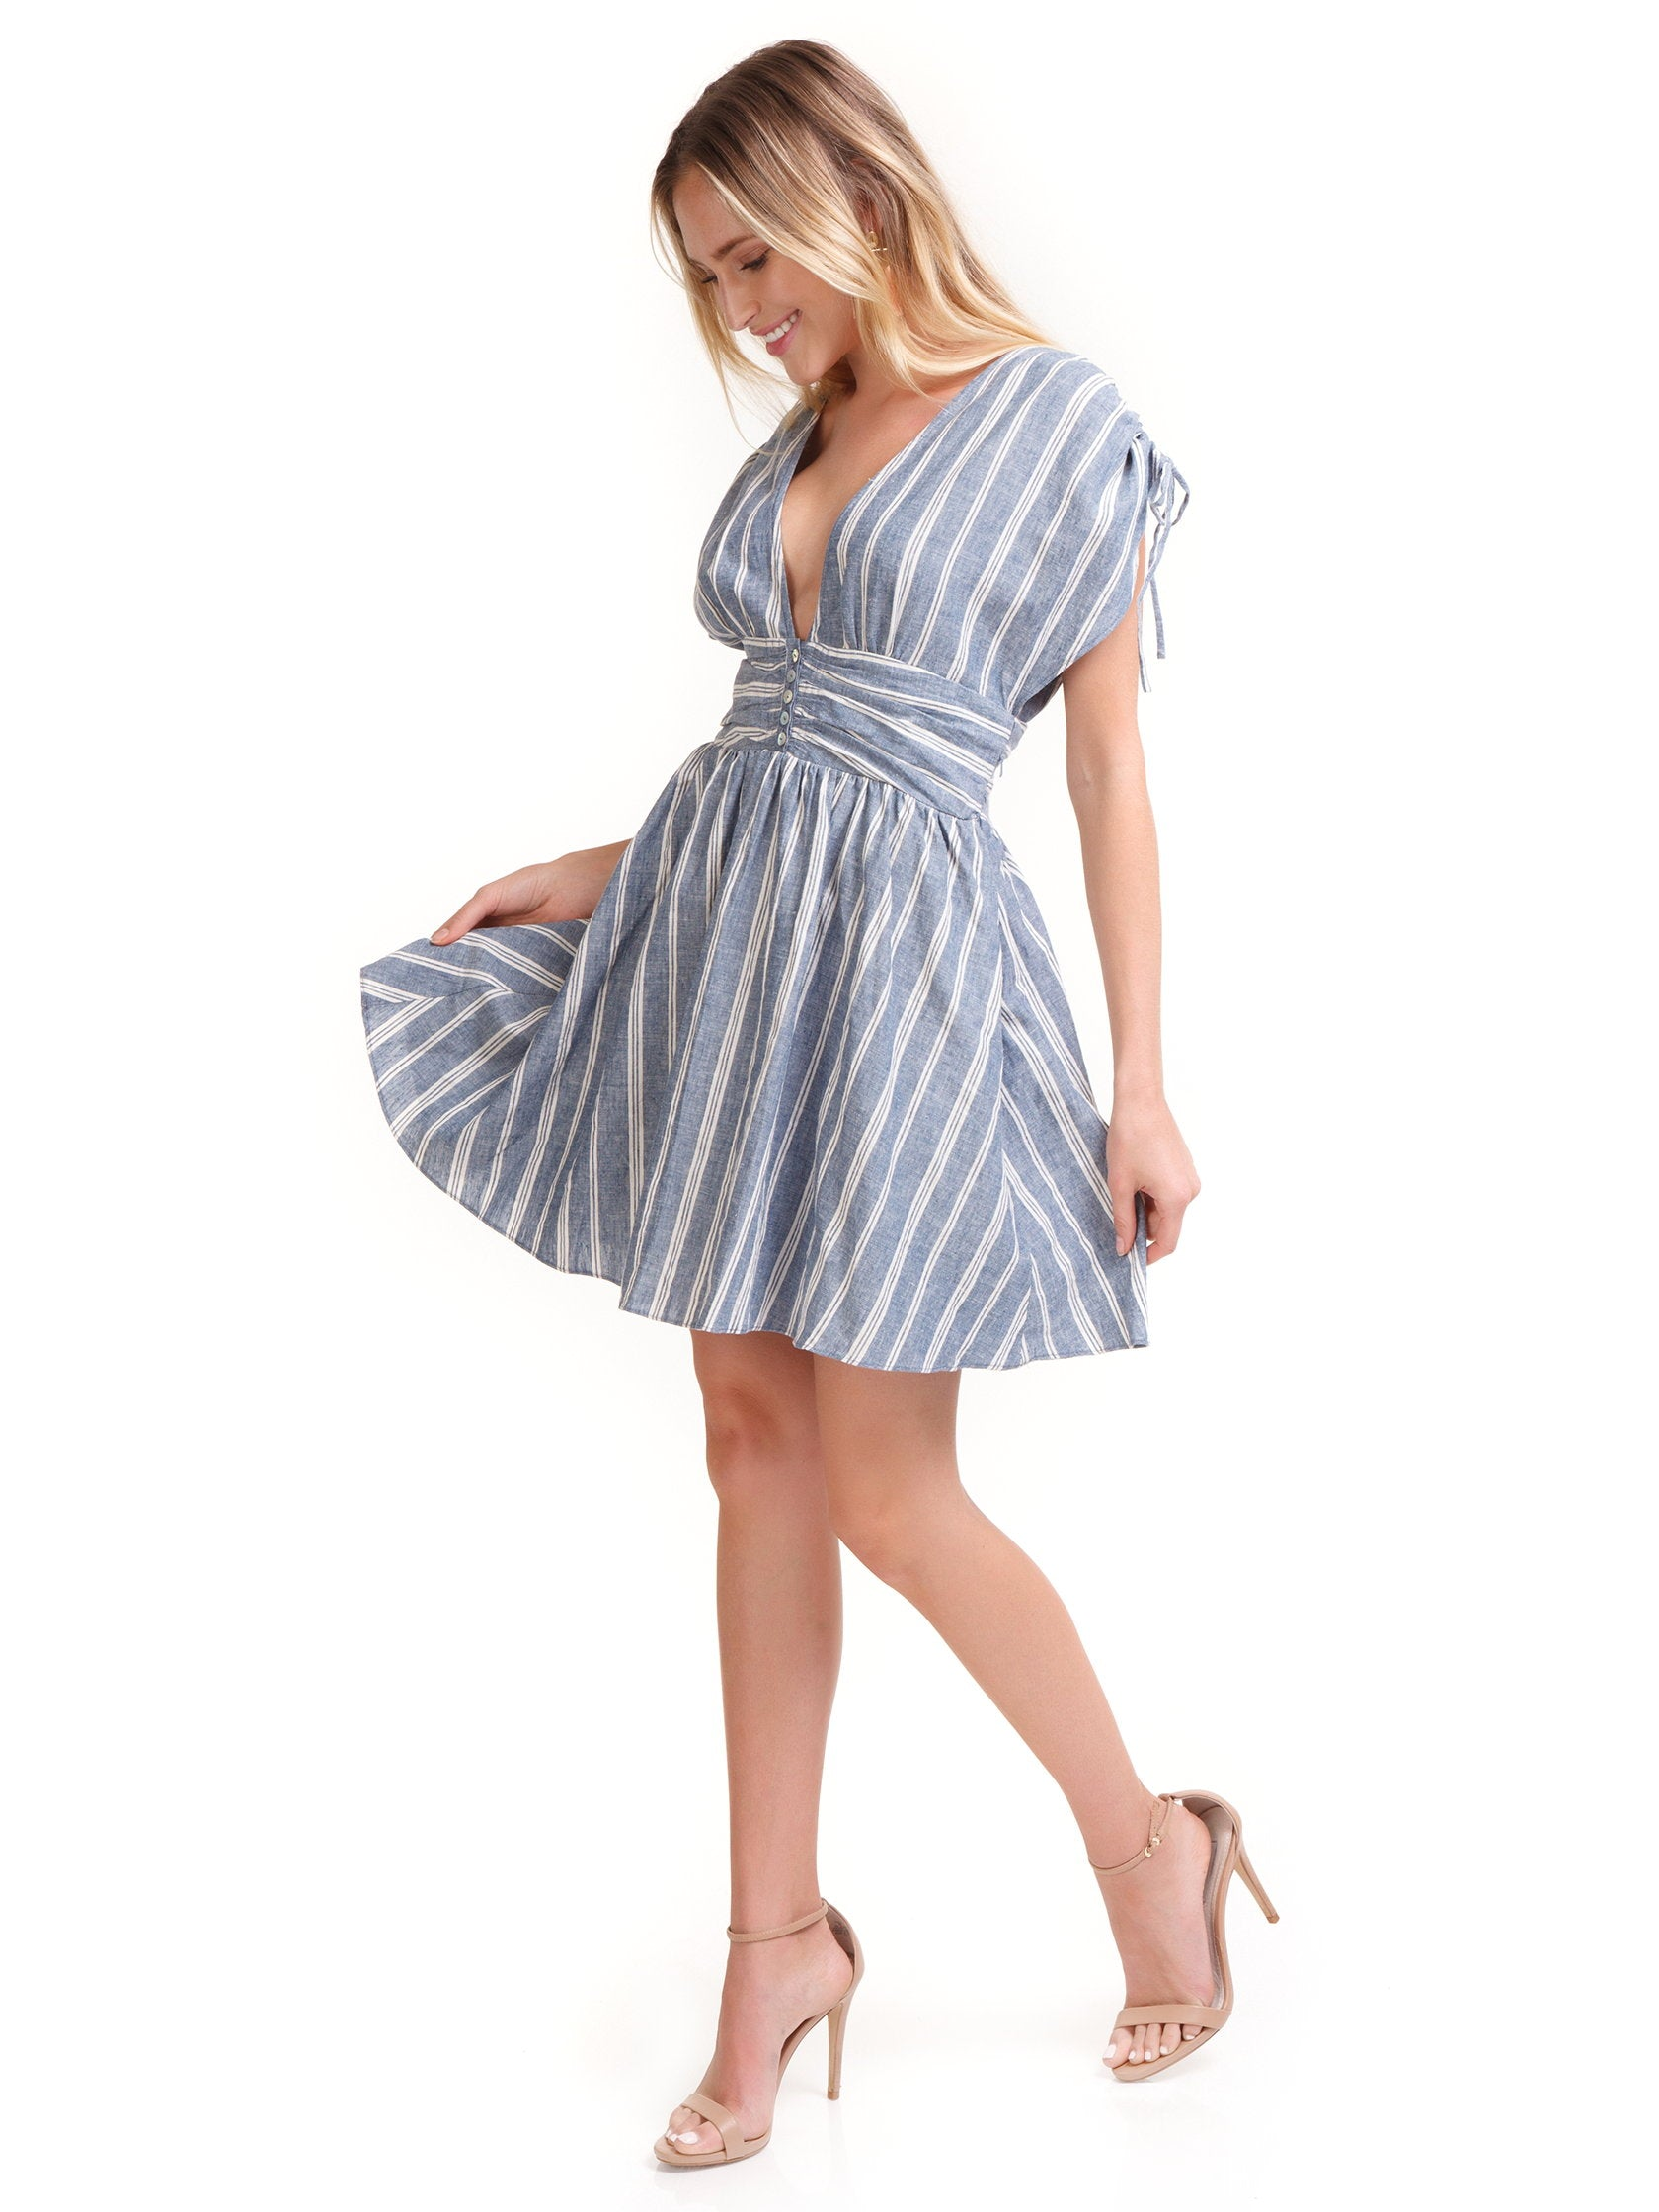 Girl outfit in a dress rental from Free People called Roll The Dice Striped Dress